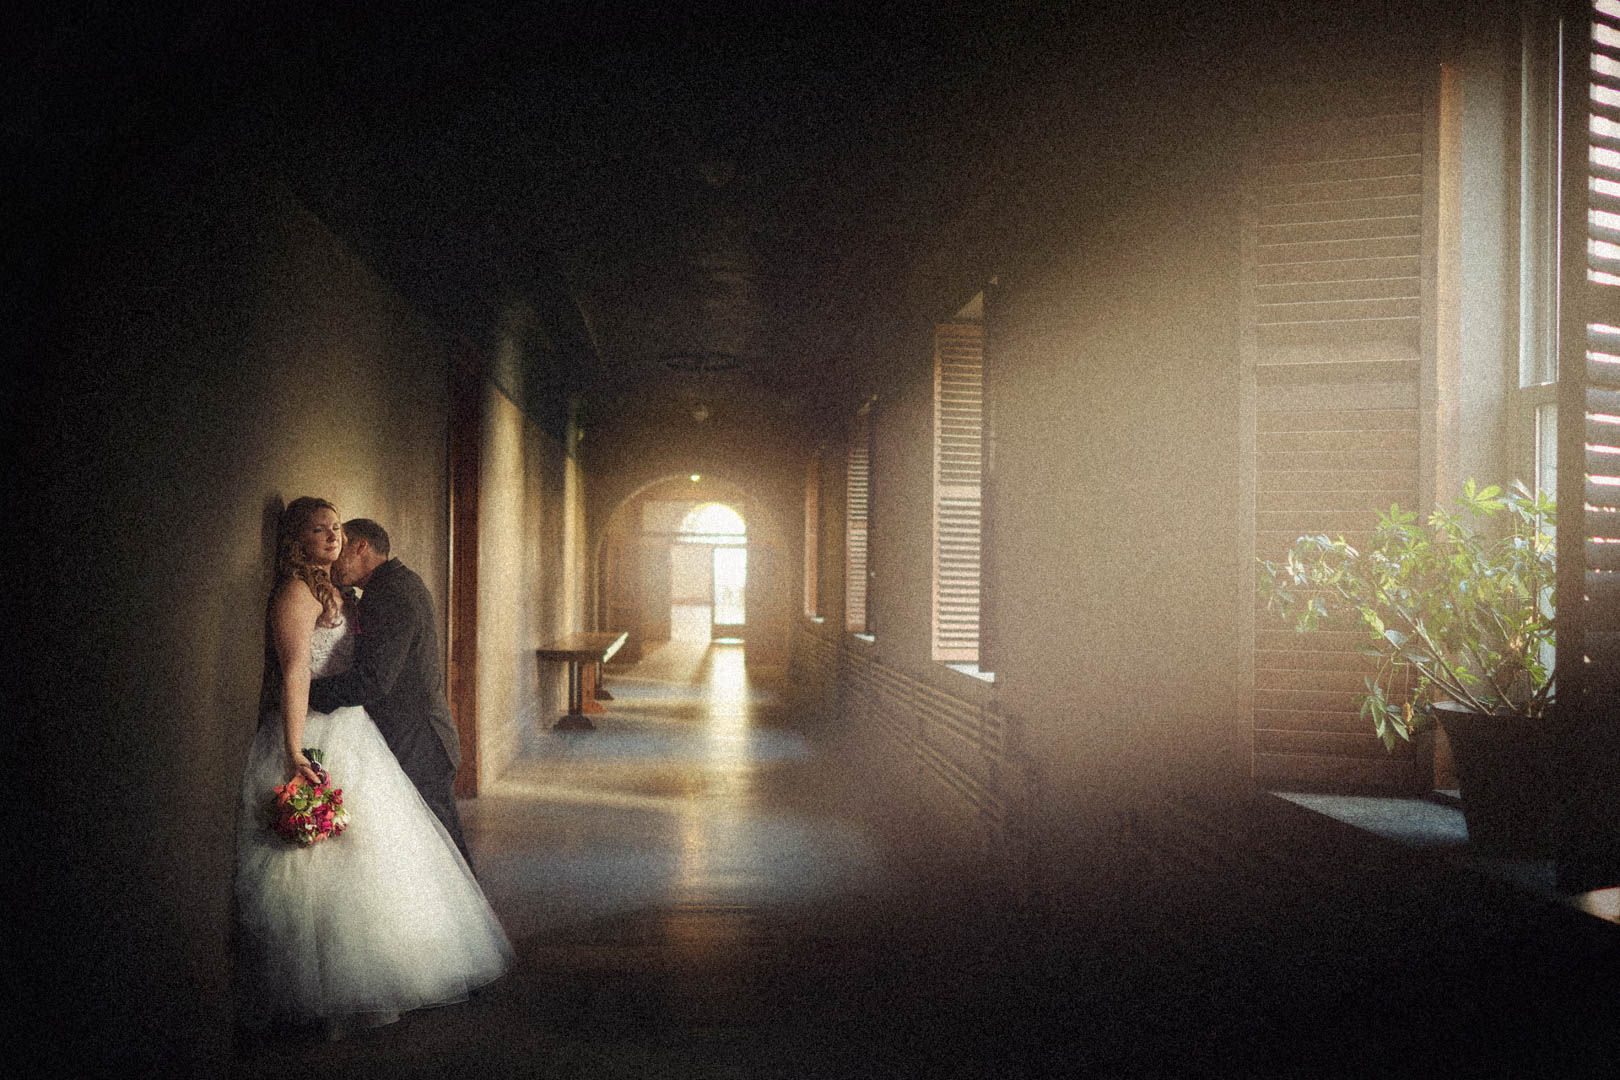 Bride and groom in a romantic hallway with sun rays on them